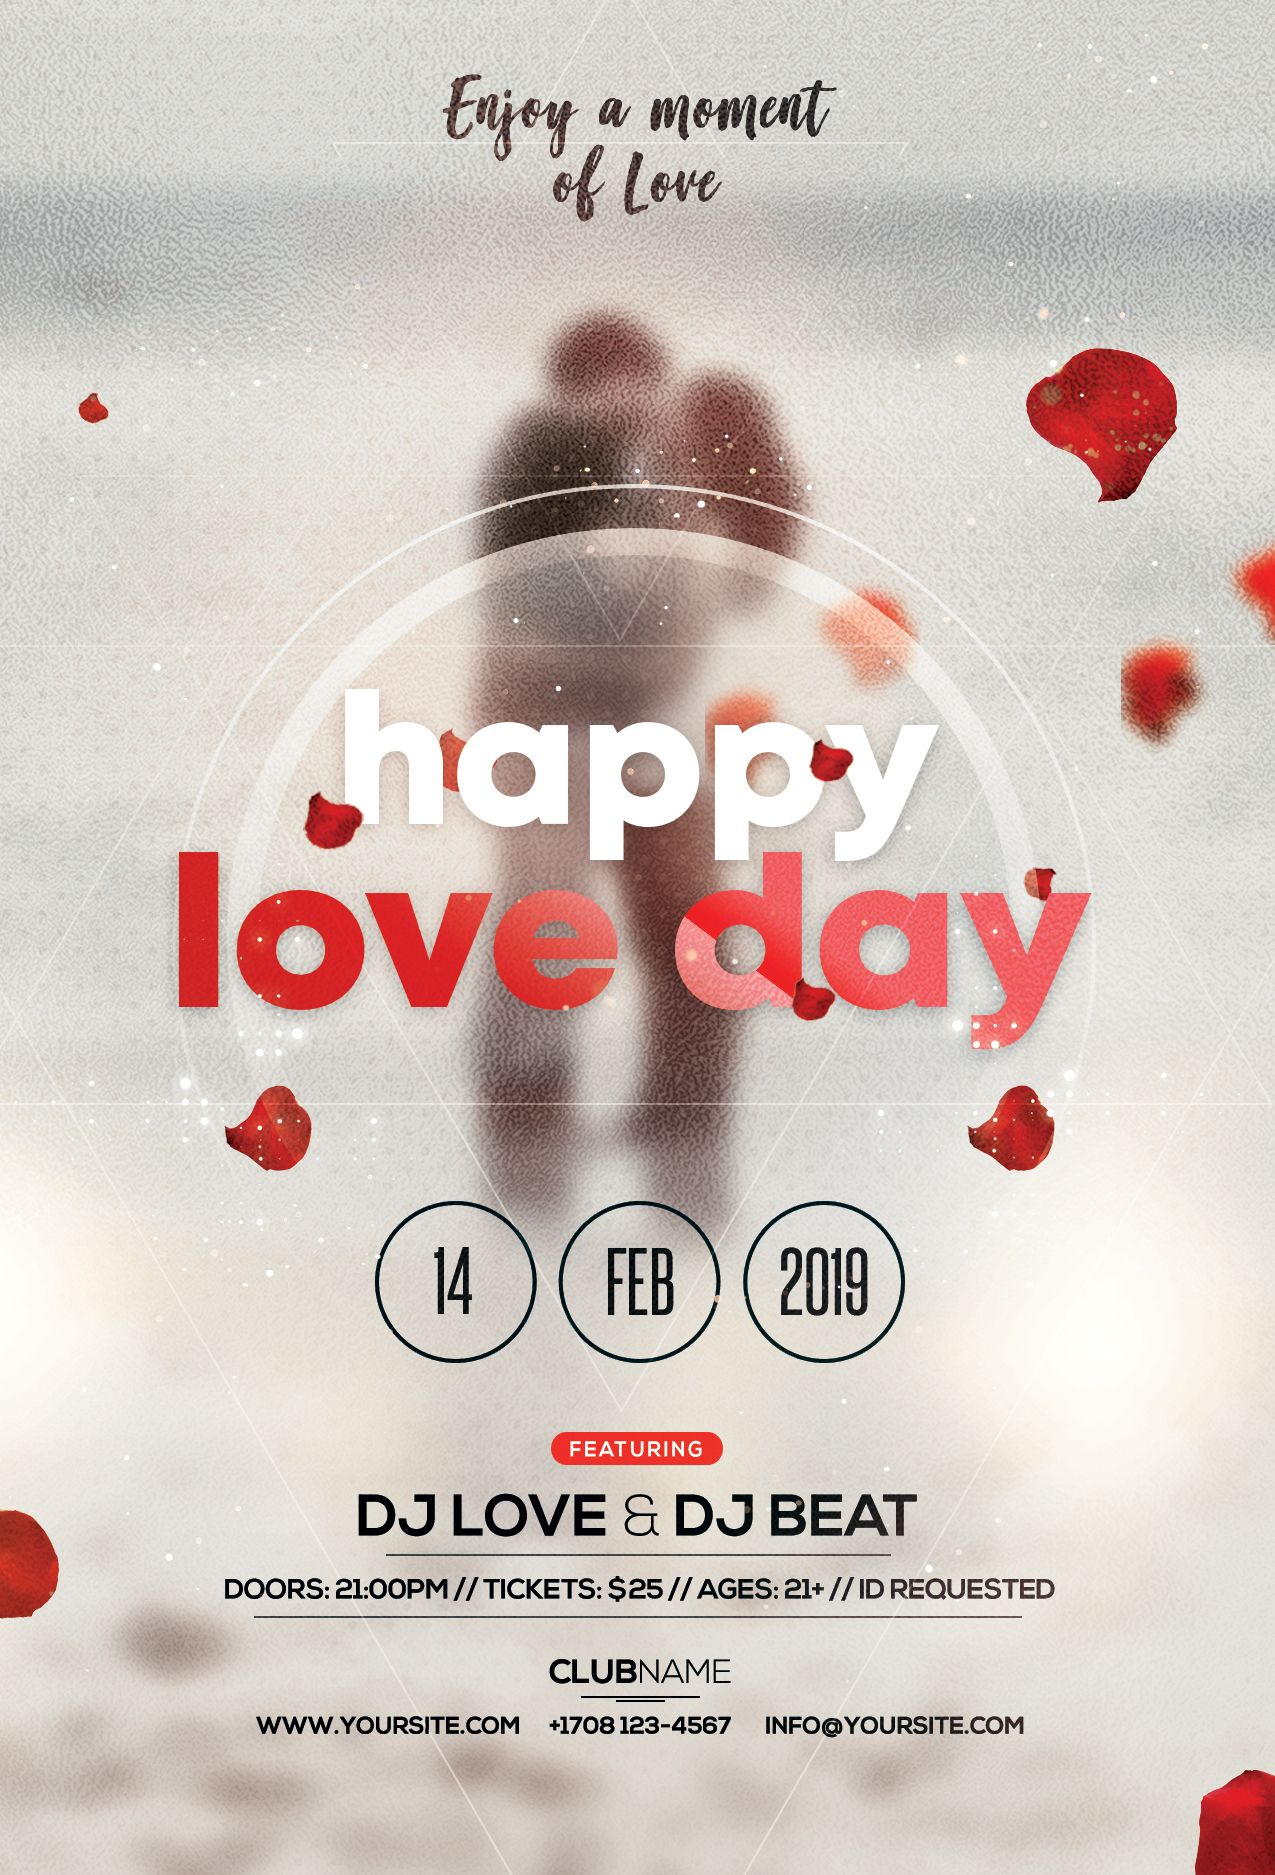 Happy Valentine S Day Free Psd Flyer Template Pixelsdesign Free Psd Flyer Psd Flyer Templates Event Flyer Templates